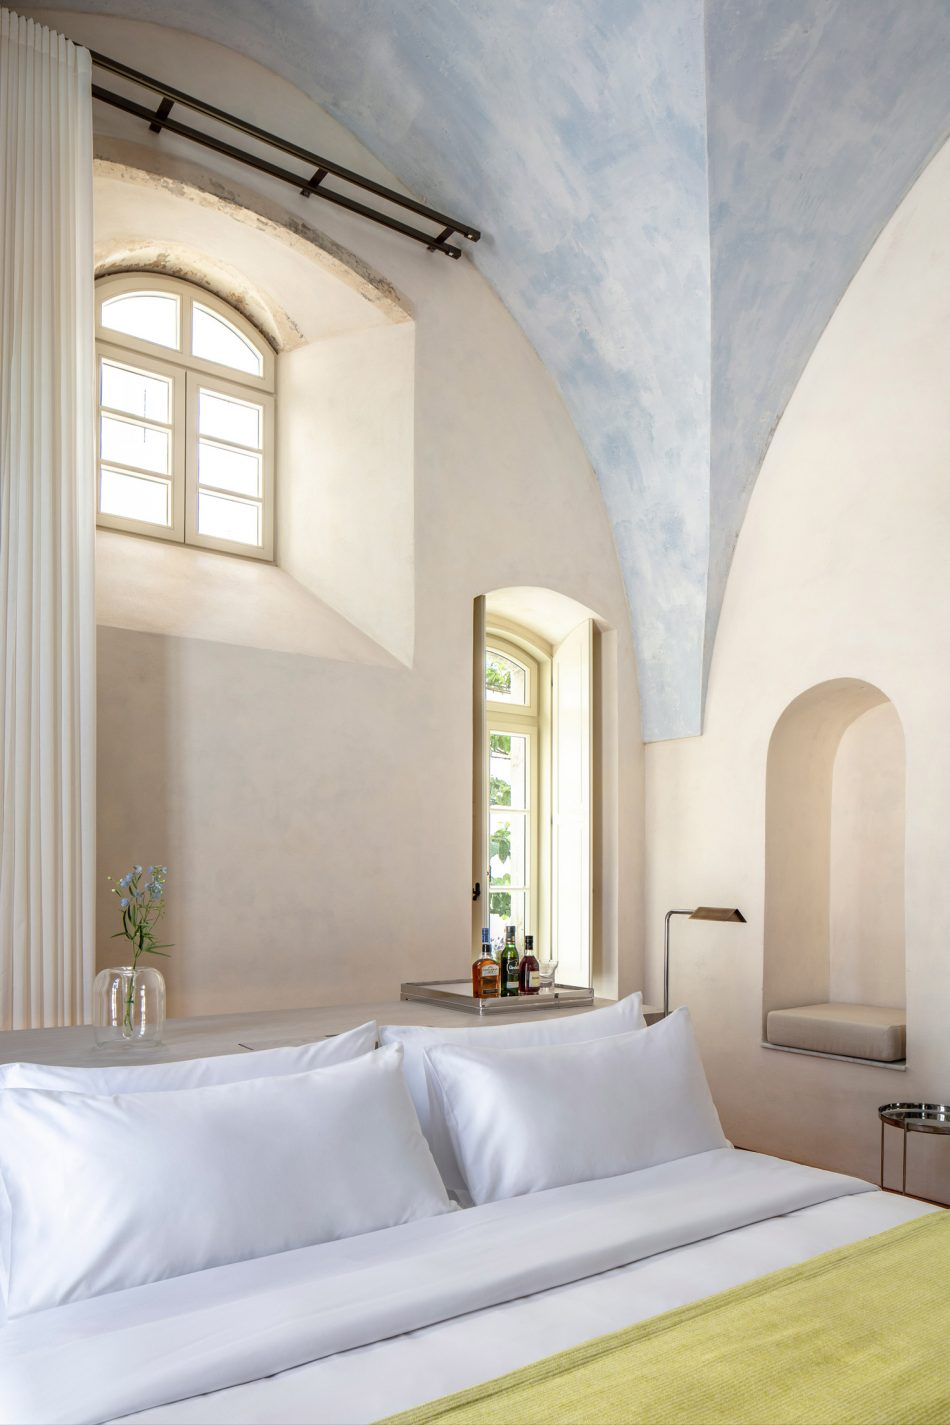 john pawson John Pawson Transforms a Former Hospital Into a Luxury Hotel John Pawson Transforms a Former Hospital Into a Luxury Hotel in Tel Aviv 11